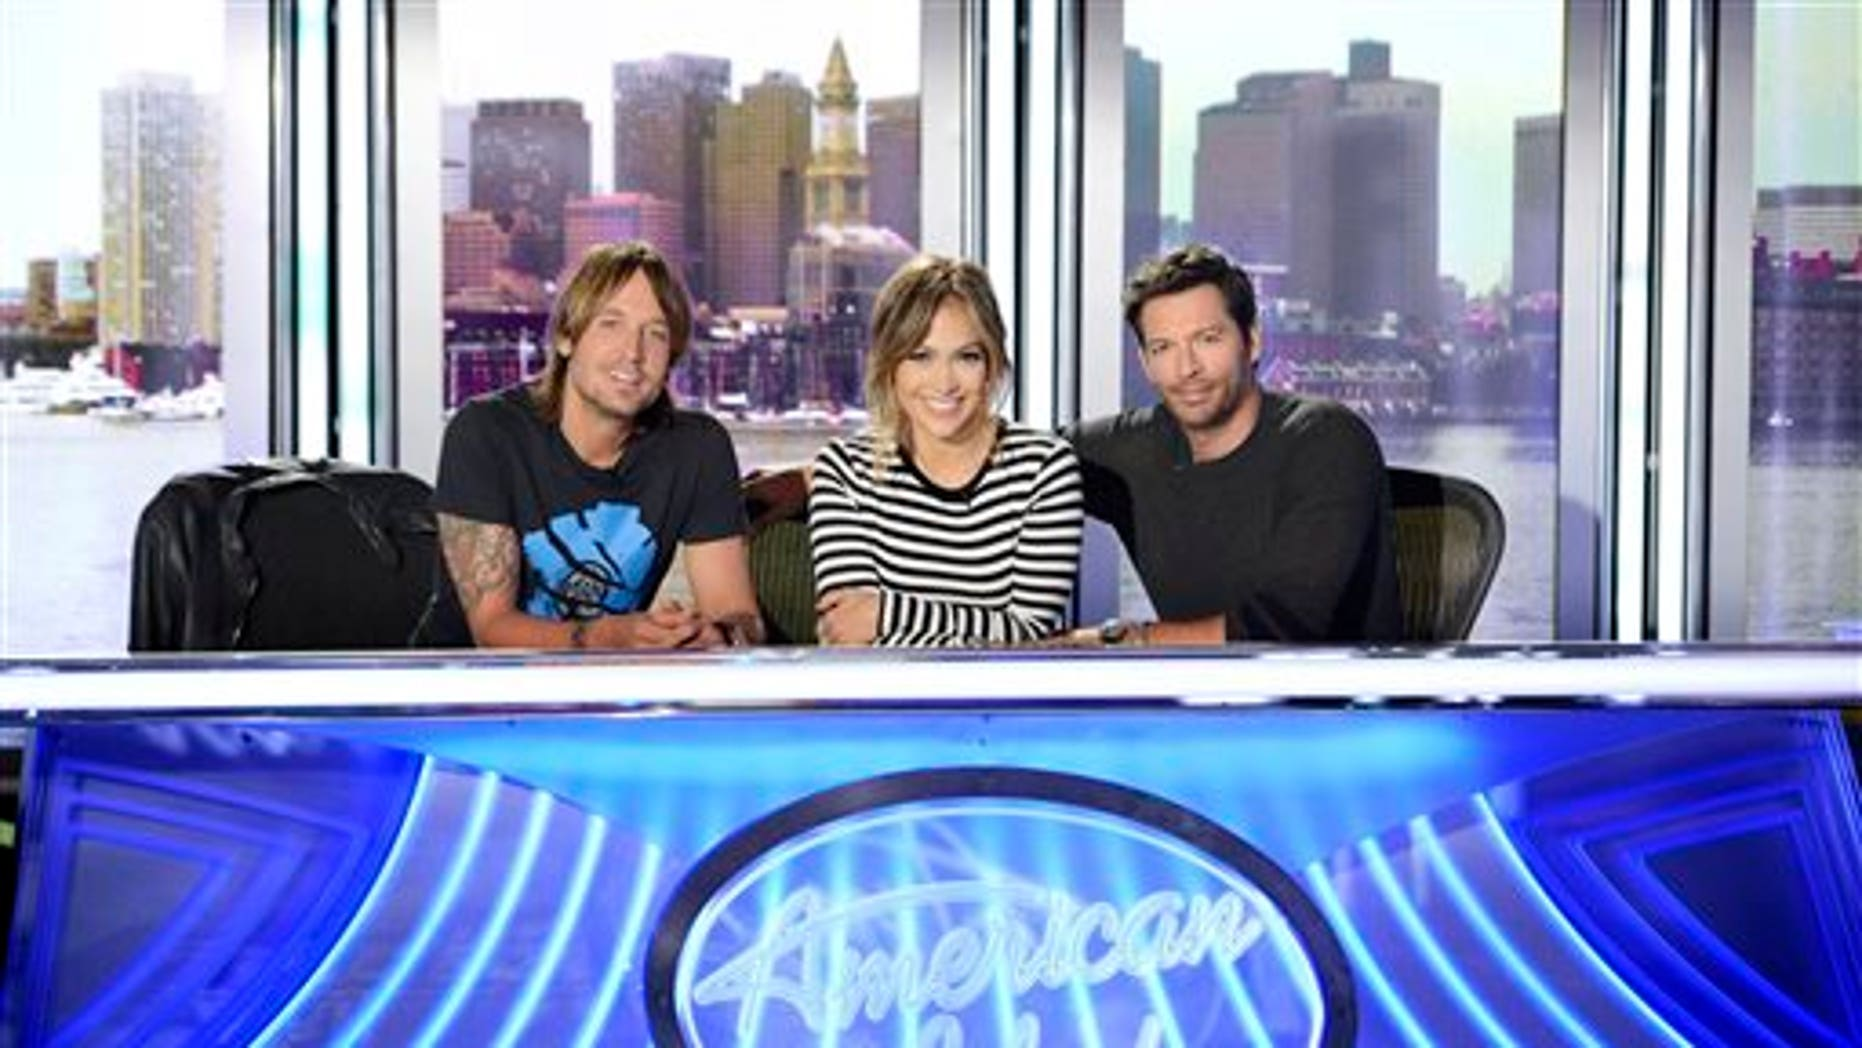 """FILE - This 2013 file publicity photo released by FOX shows American Idol XIII judges, from left, Keith Urban, Jennifer Lopez and Harry Connick Jr. One thing about season 13 of """"American Idol"""" is that unlike last season, the judges seem to be getting along. (AP Photo/FOX, Michael Becker)"""